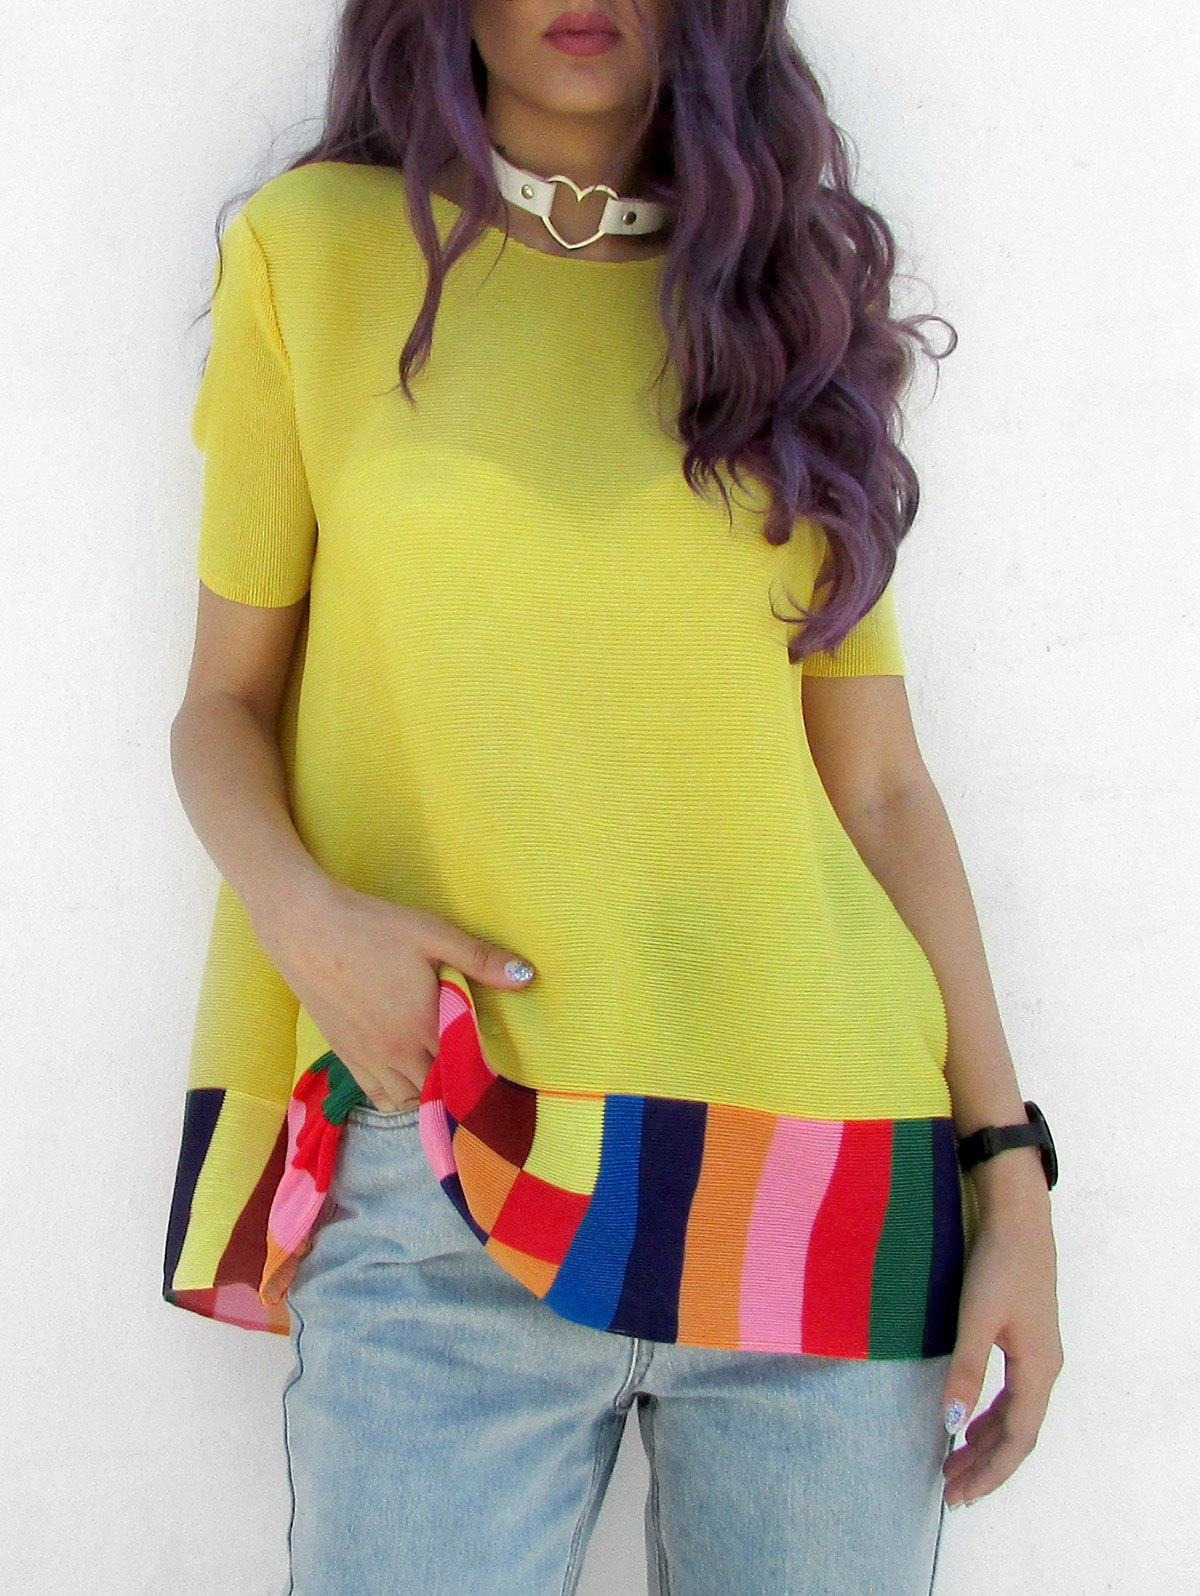 Ethnic Women's Jewel Neck Short Sleeves Color Block Blouse - YELLOW ONE SIZE(FIT SIZE XS TO M)